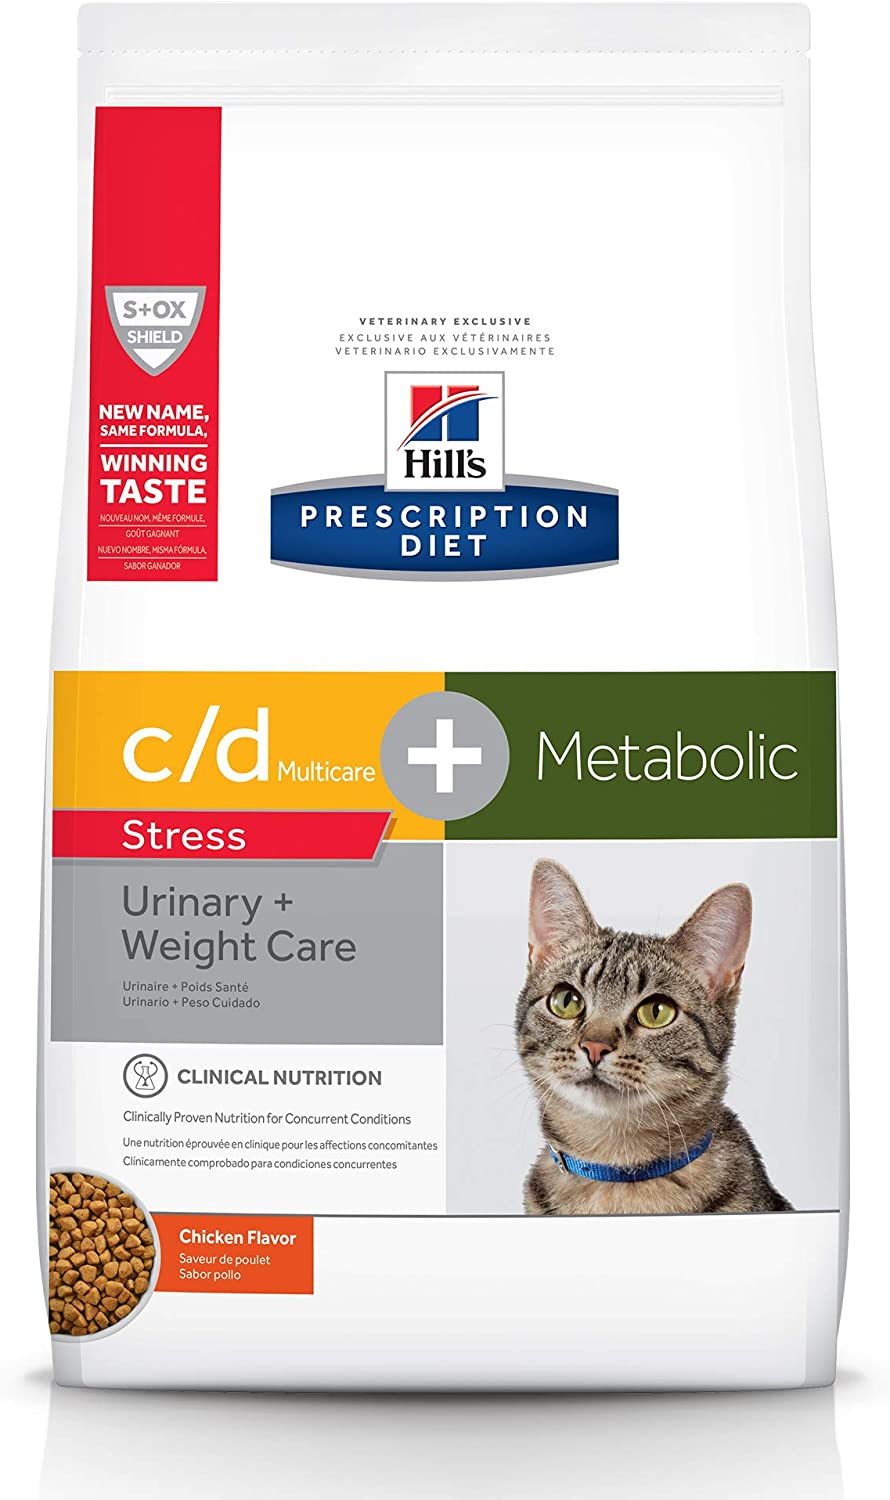 Hill's Prescription Diet Pet Nutrition Metabolic + Urinary/Weight + Urinary Care Canned Cat Food